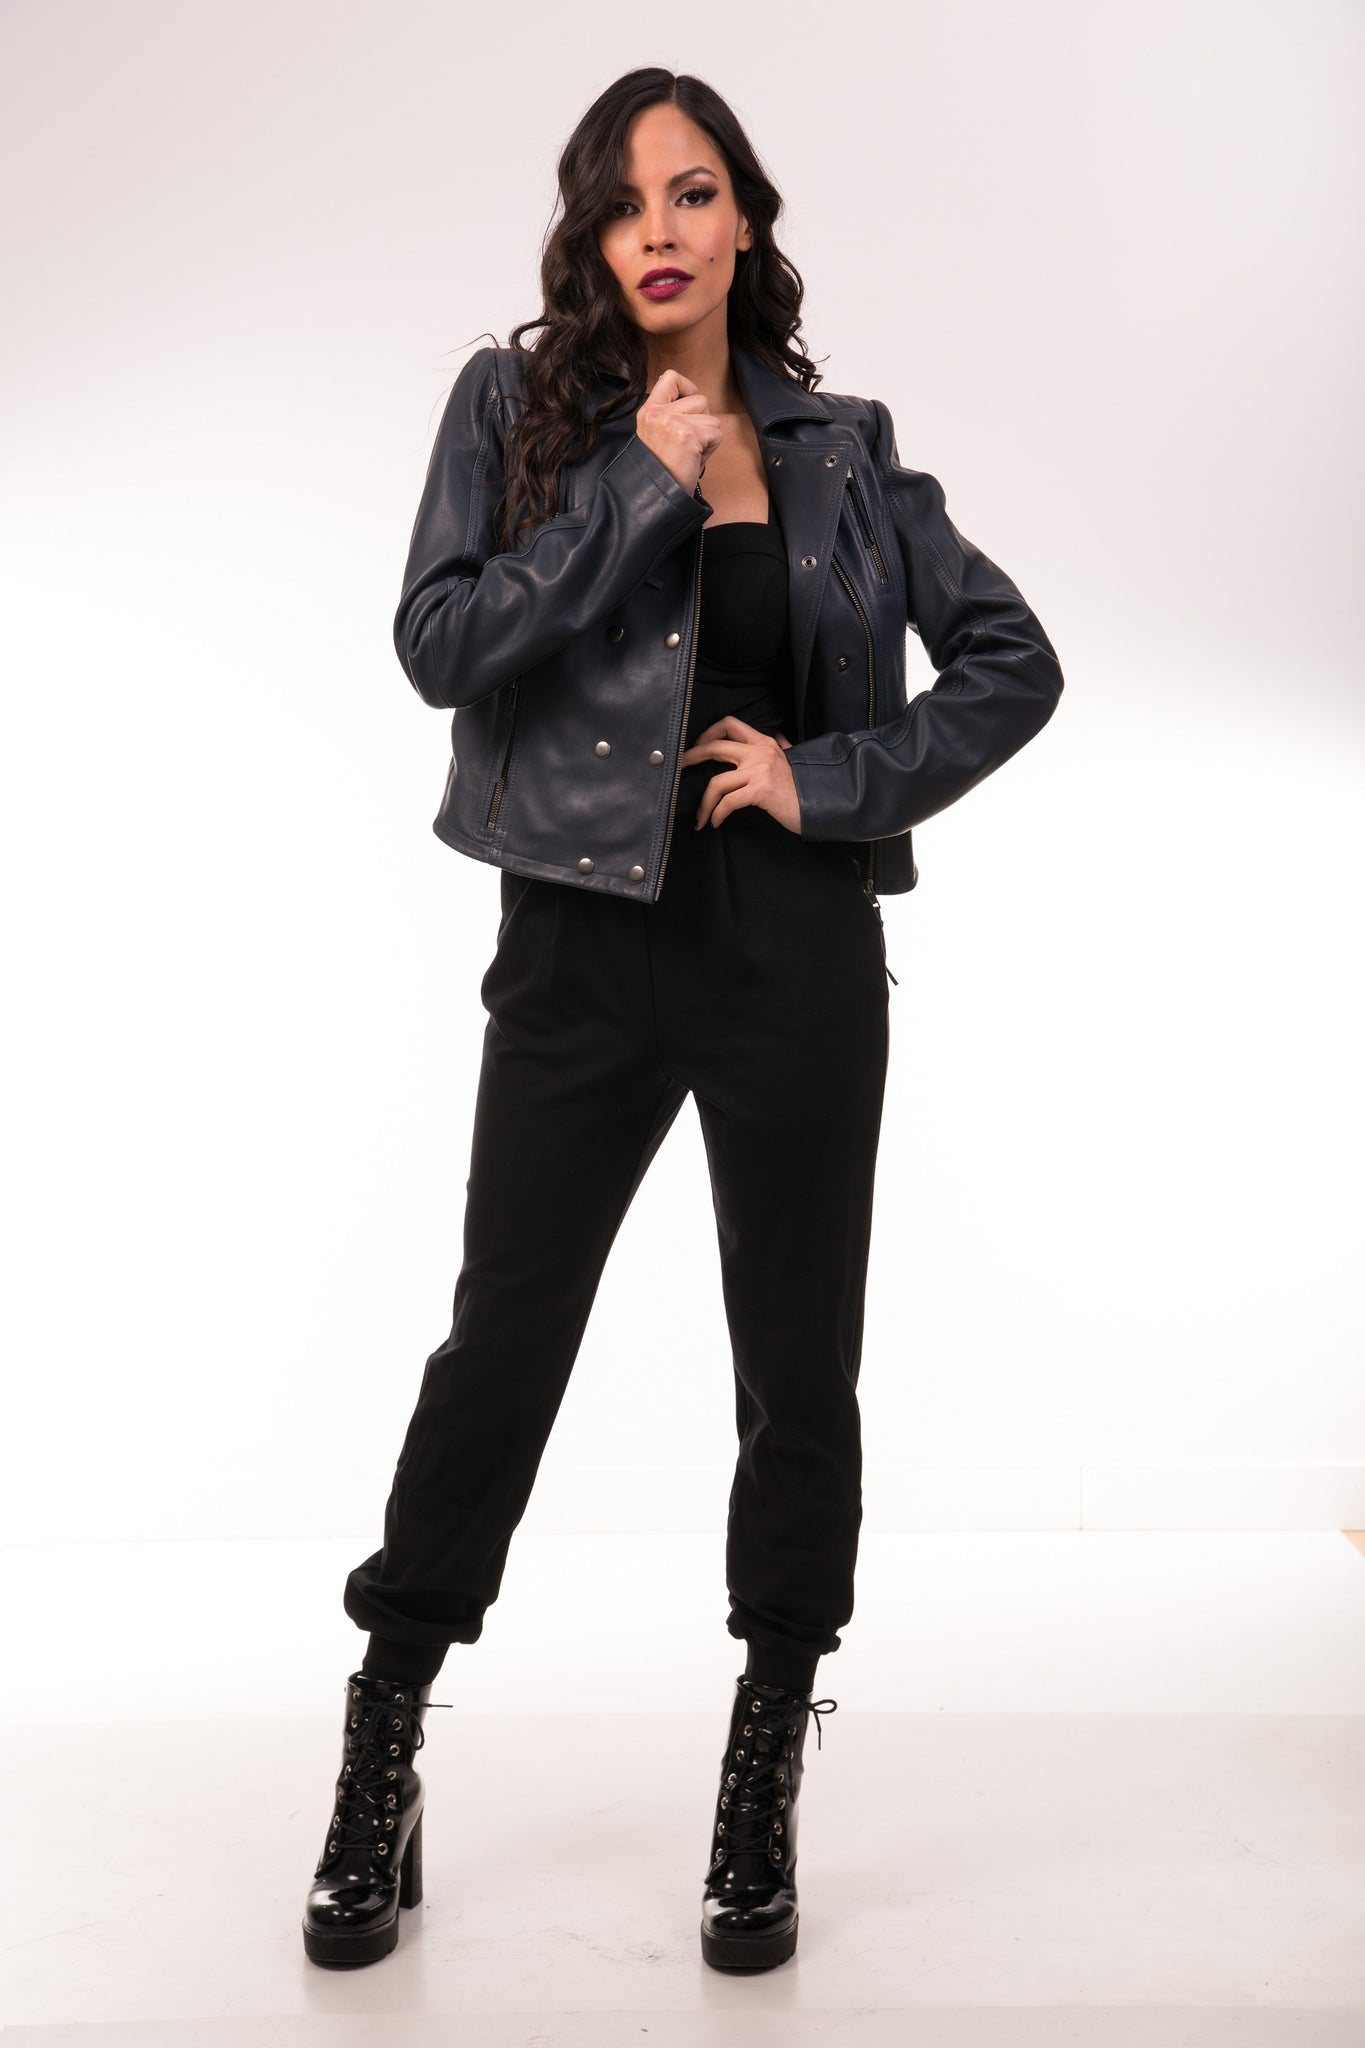 Guinevere Biodegradable & Vegetable Dyed Leather Jacket in Indigo Grey